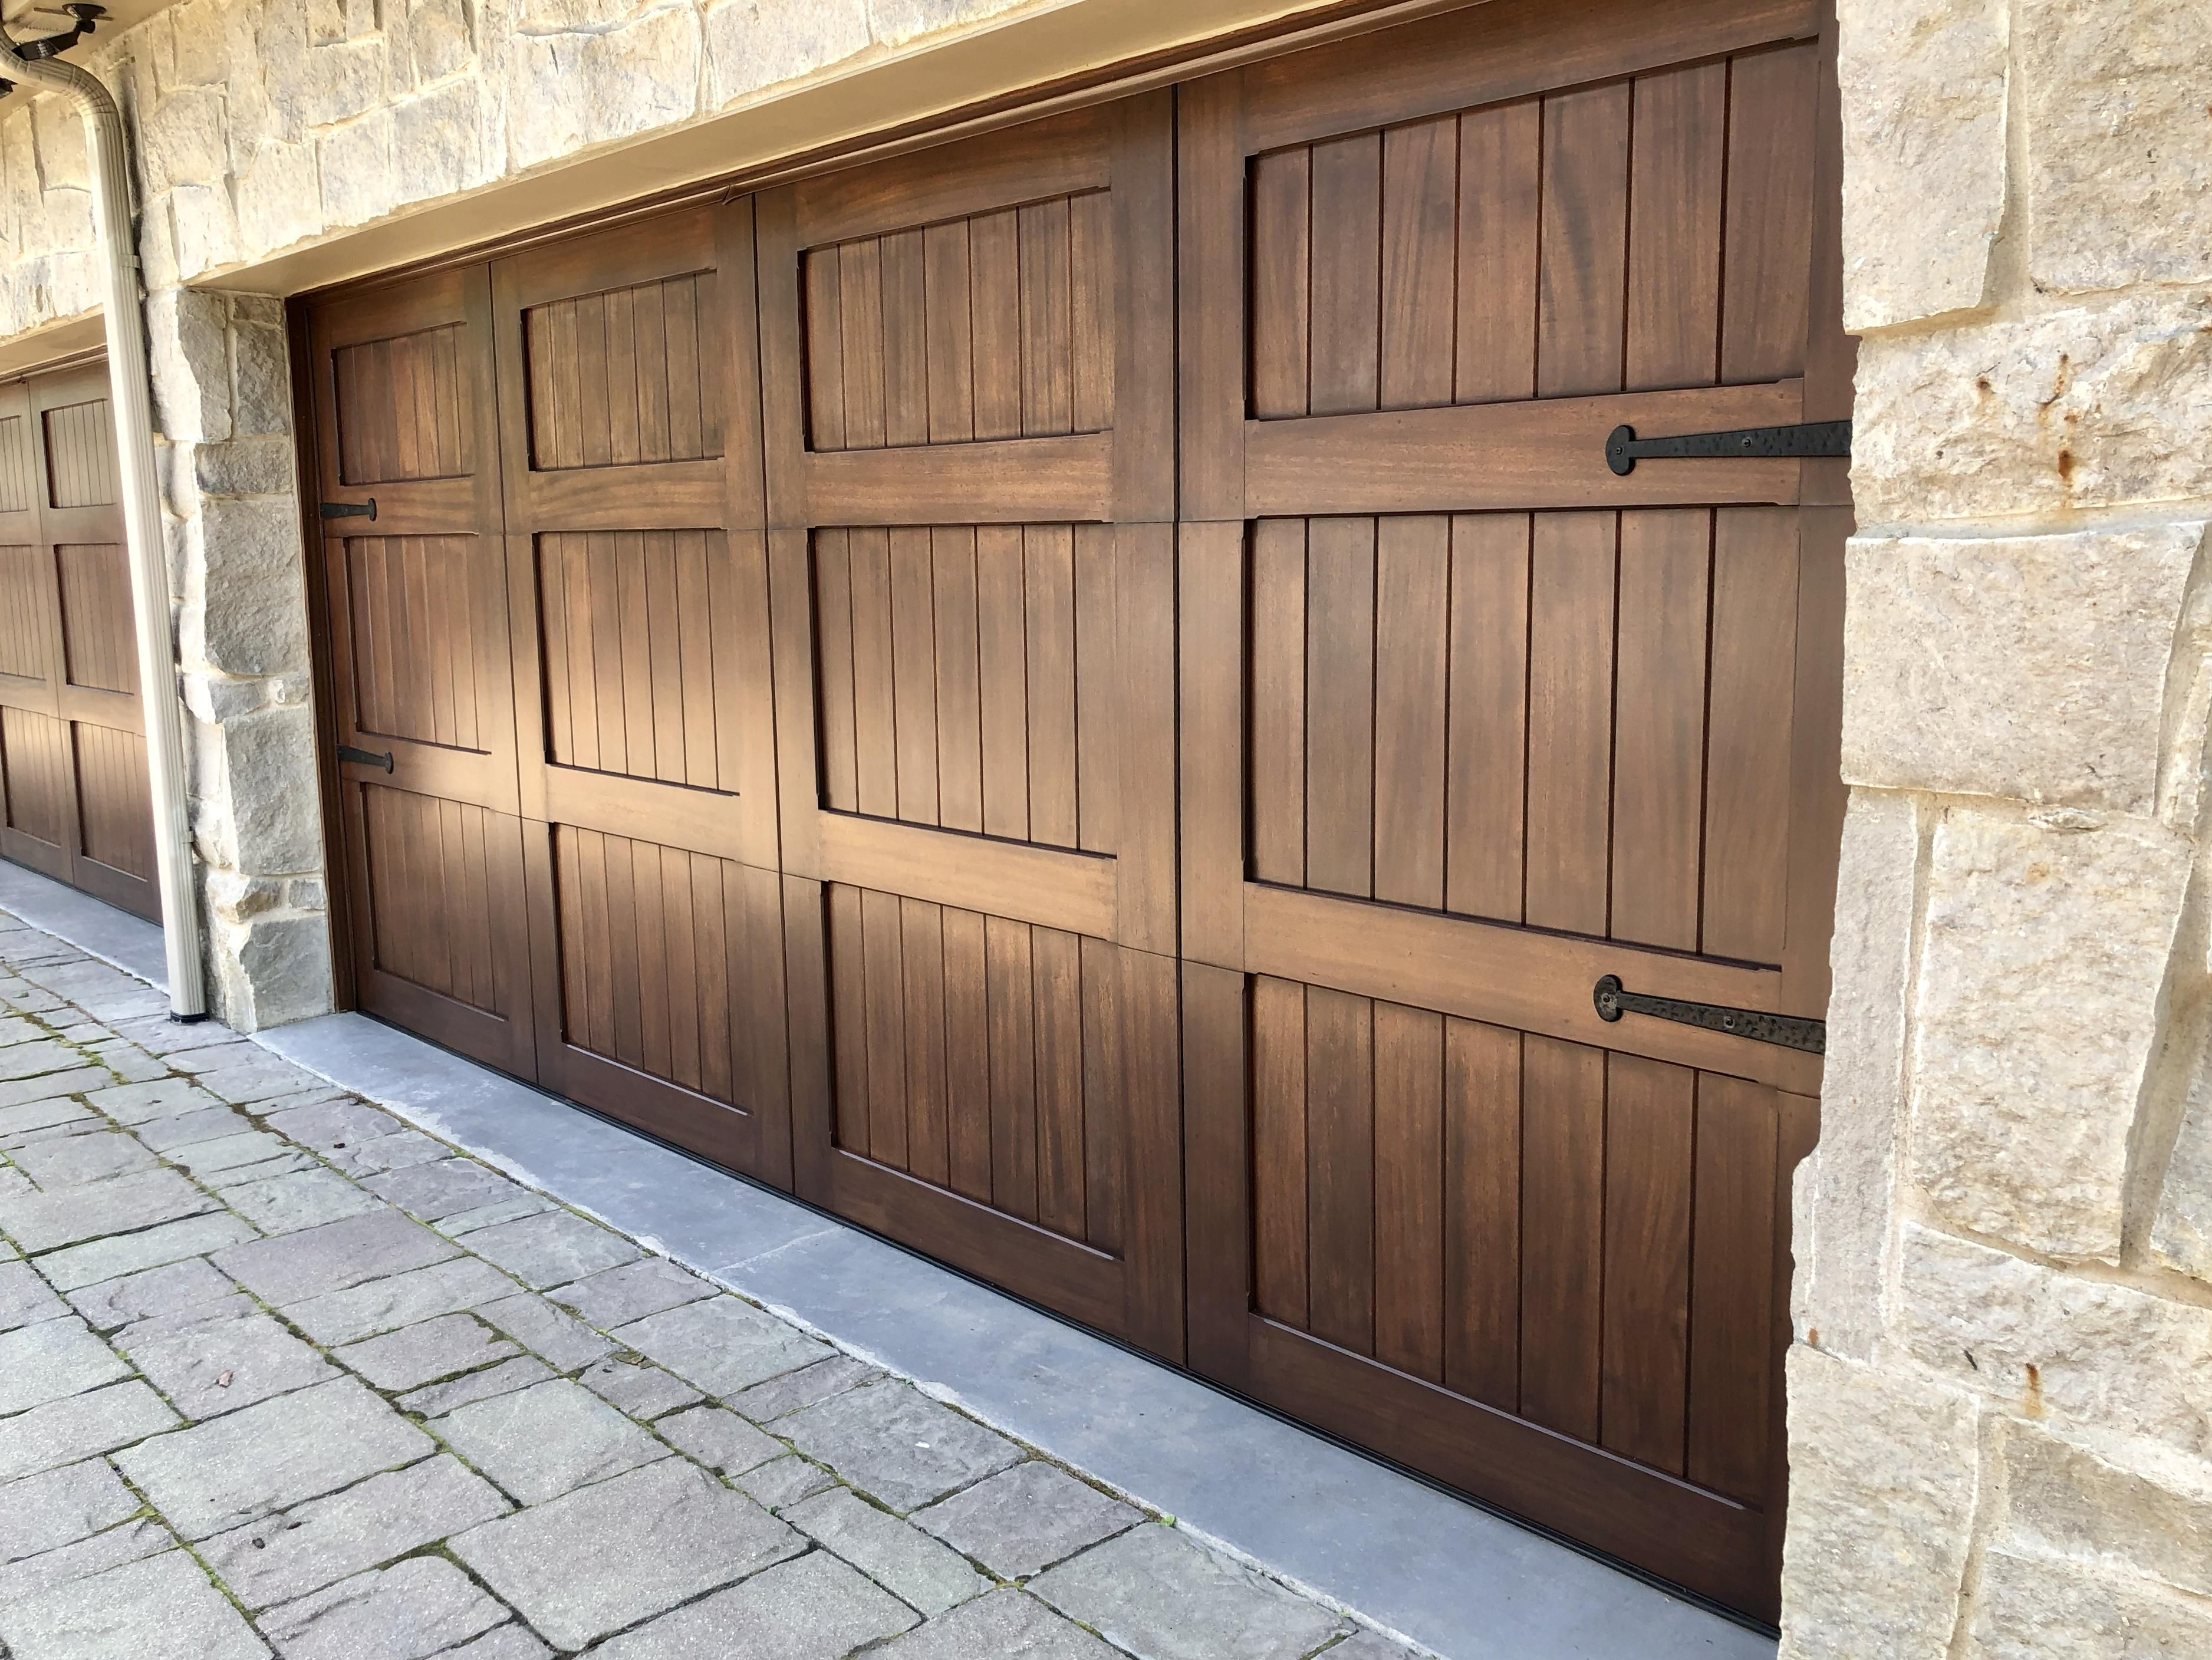 These Mahogany Garage Doors I Refinished Https Ift Tt 2kbfqap Woodworking Plans Wood Projects Garage Doors Refinished